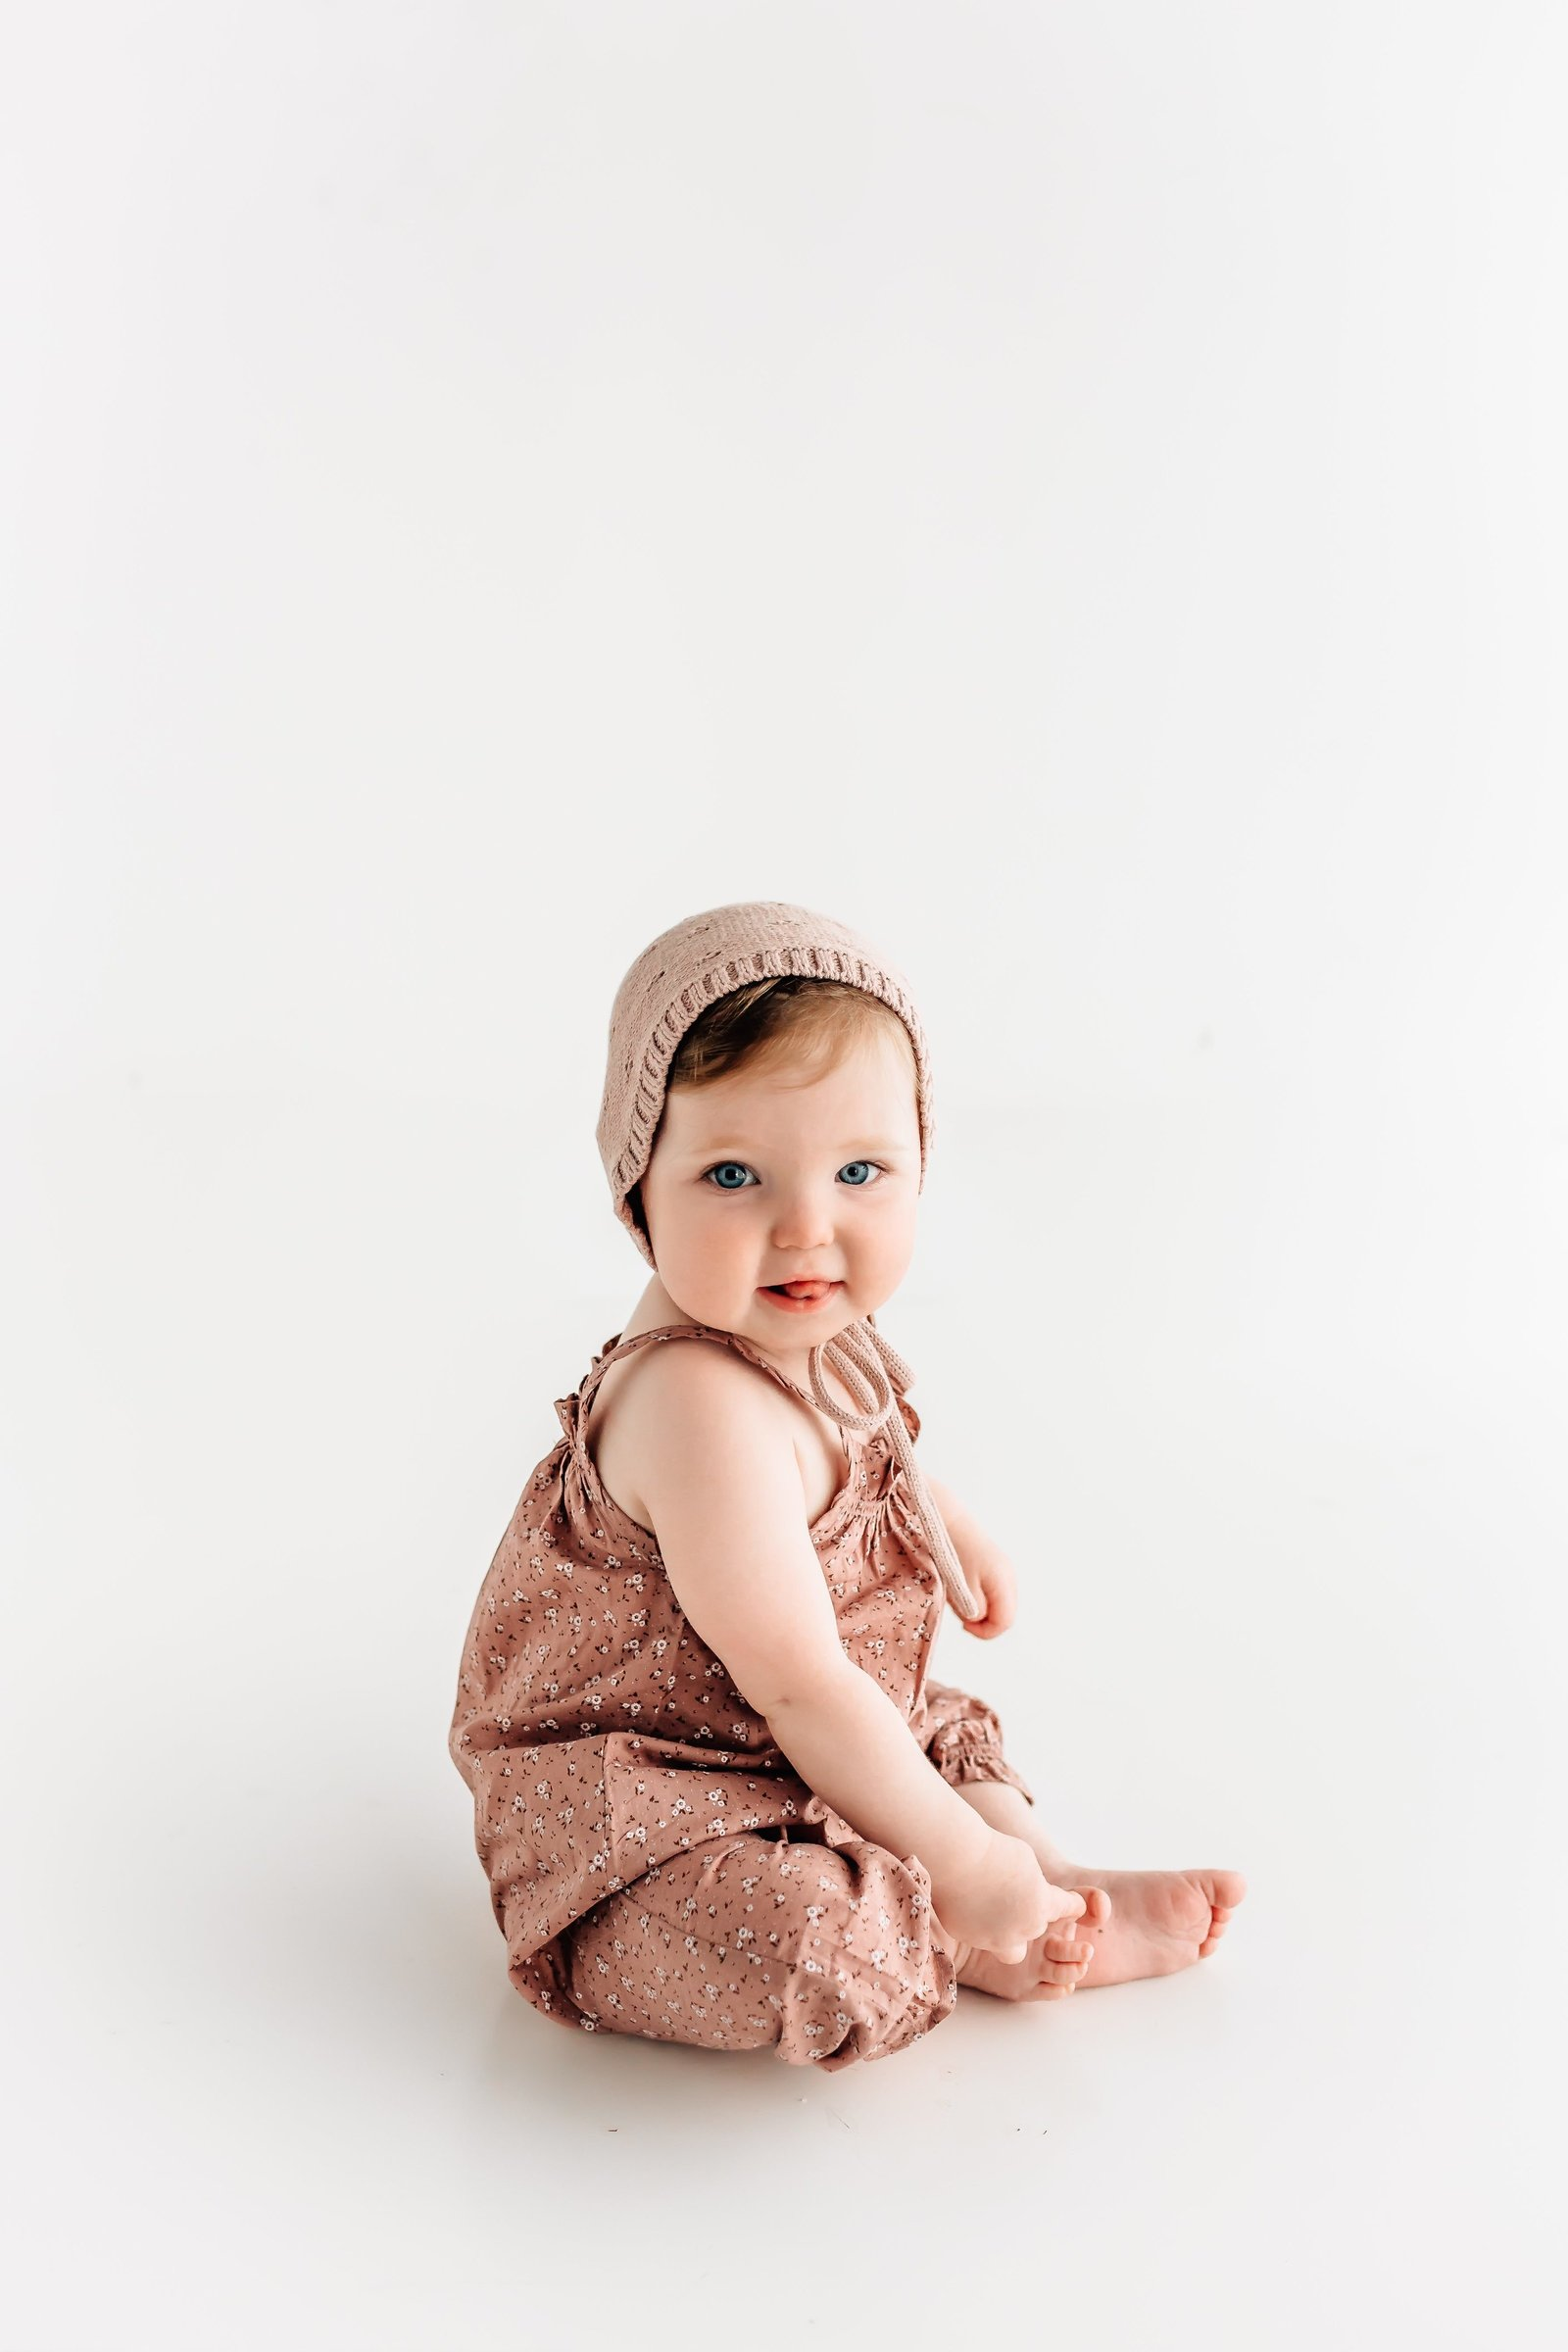 St_Louis_Baby_Photographer_Kelly_Laramore_Photography_1